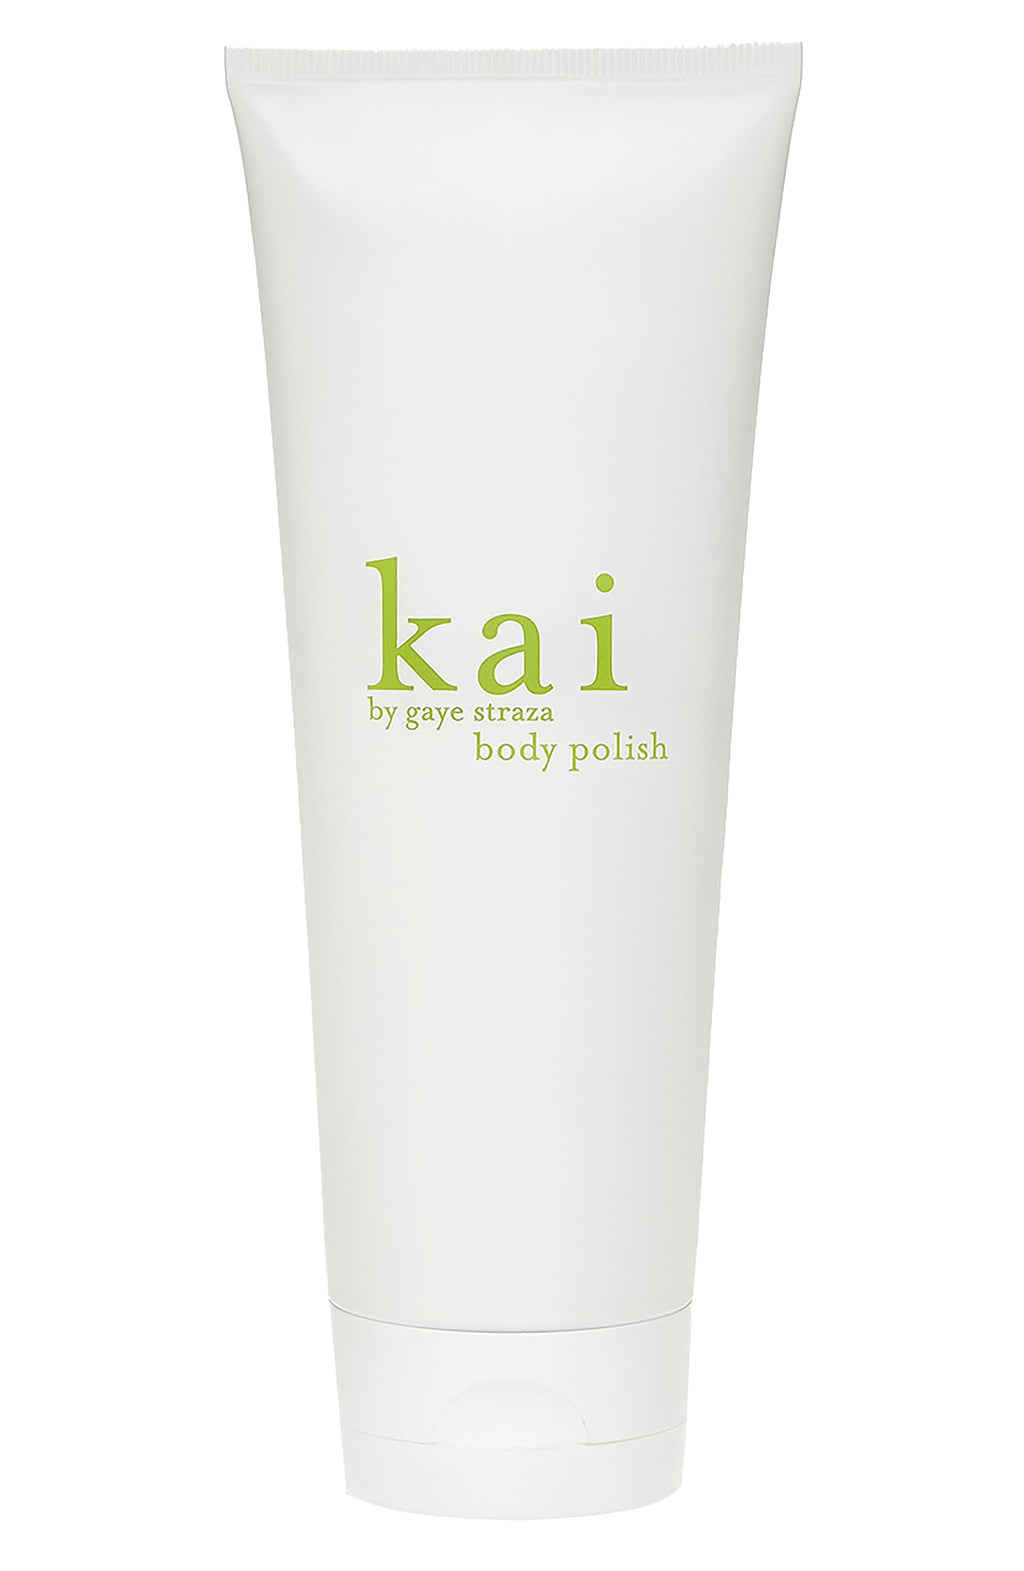 kai body polish || kai || beautybar